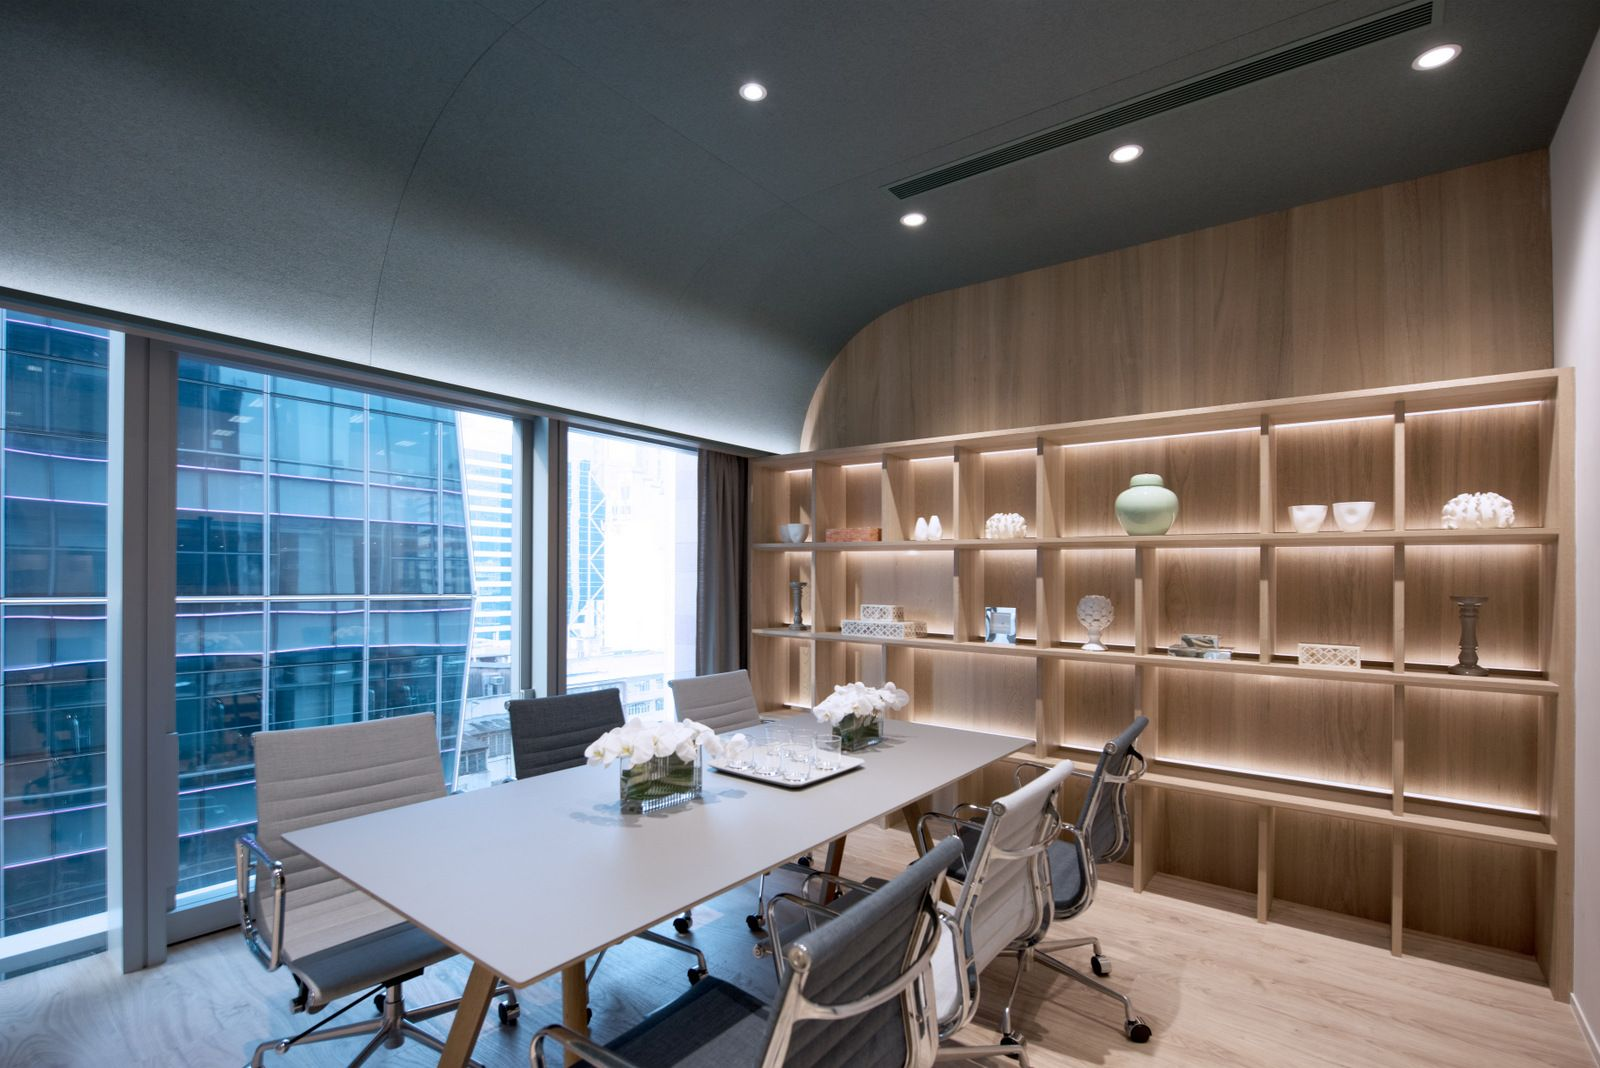 Office Tour The Work Project Coworking Offices Hong Kong Coworking Office Interior Design Interior